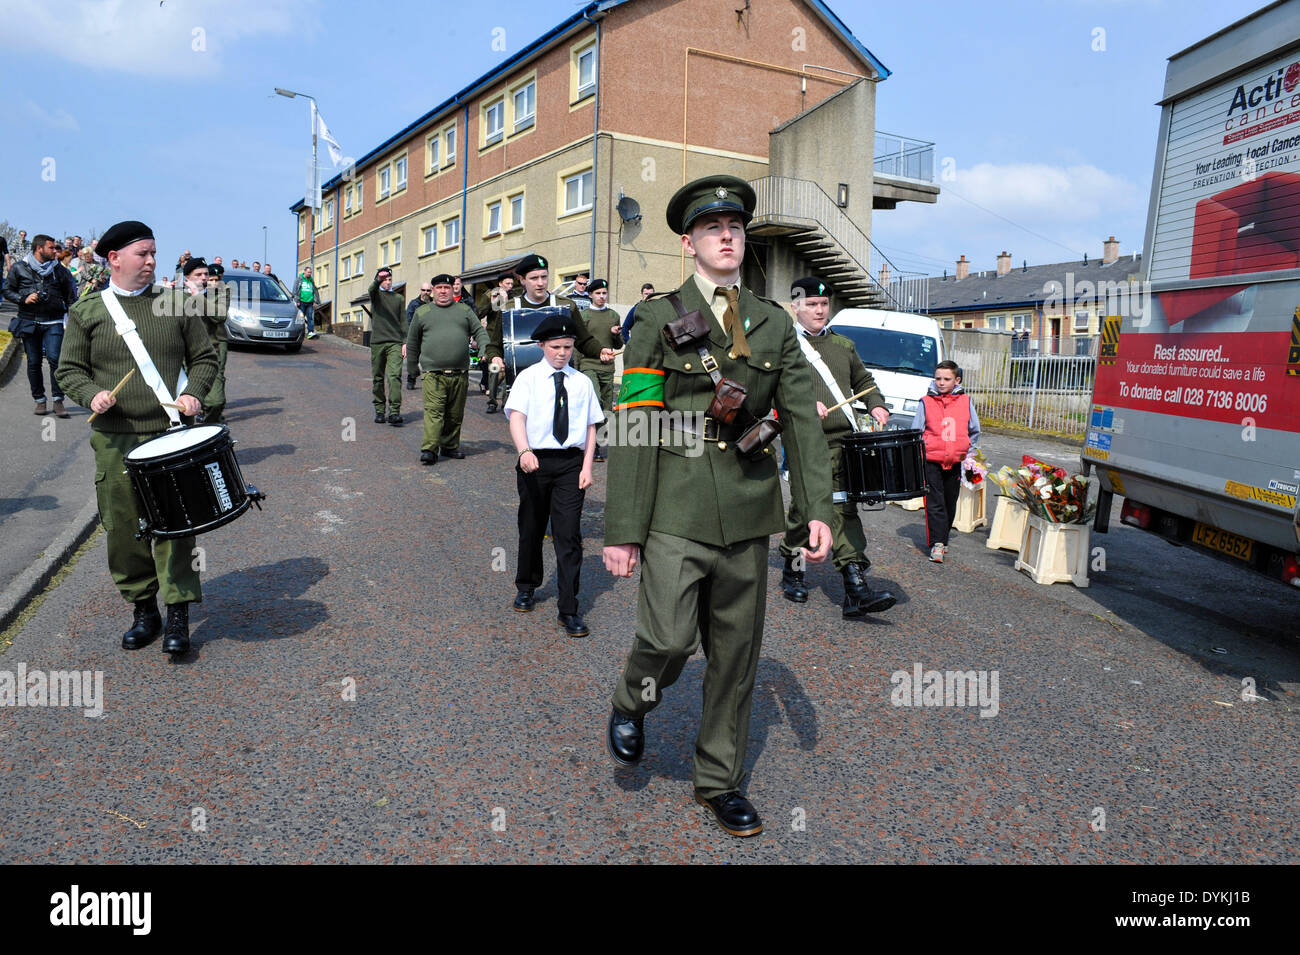 Derry, Londonderry, Northern Ireland. 21st April, 2014. Dissident Republicans Commemorate Easter Rising. A republican band dressed in paramilitary uniforms attends the dissident Irish republican 32 County Sovereignty Movement parade to the City Cemetery in Derry to commemorate the 1916 Easter Rising. Credit: George Sweeney / Alamy Live News - Stock Image